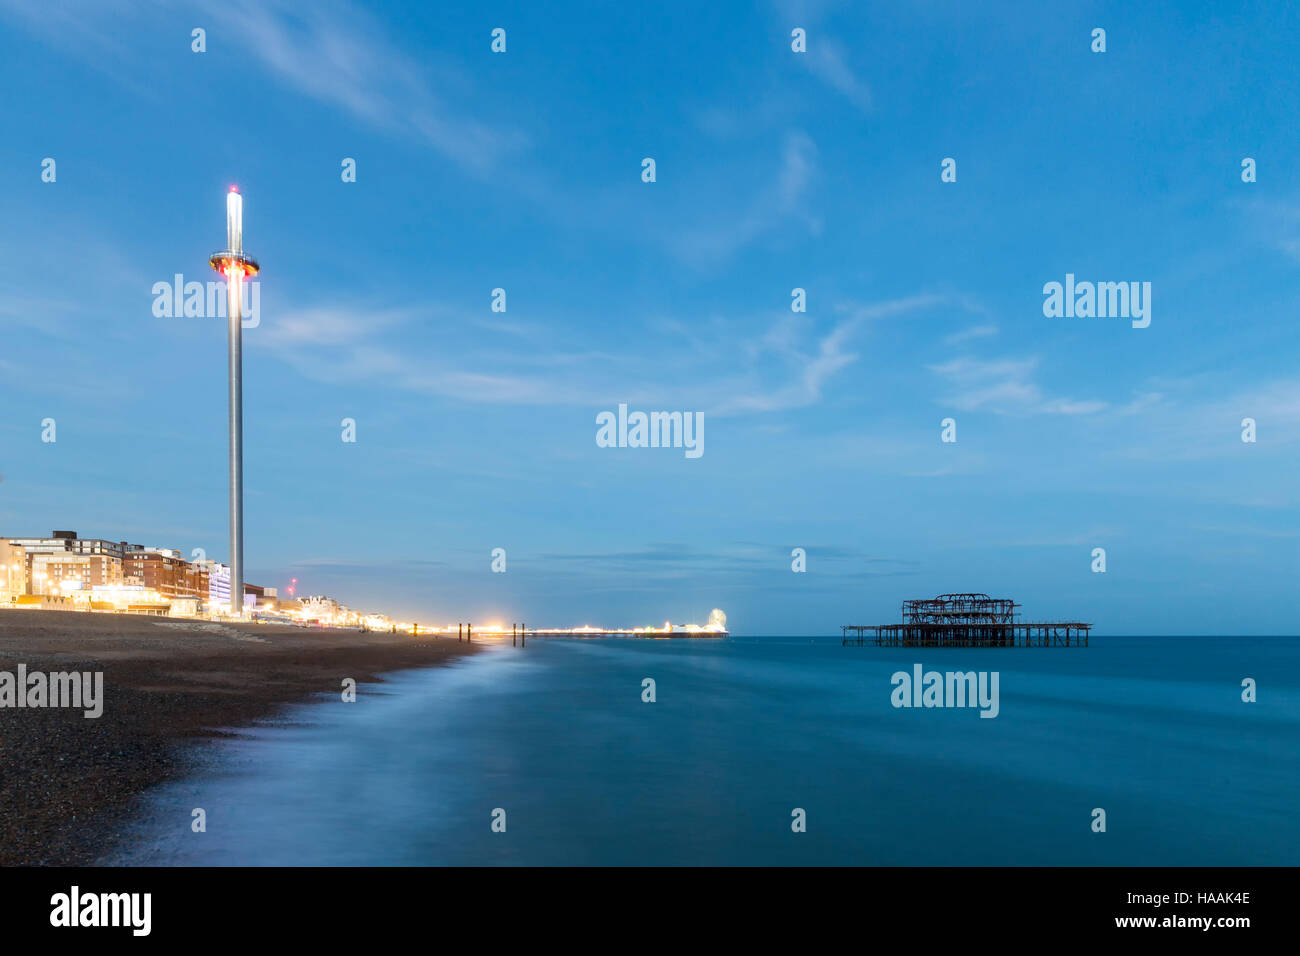 Night Photo of Brighton Skyline with old West Pier, Central Pier with fun fair lights and the new i360 attraction - Stock Image